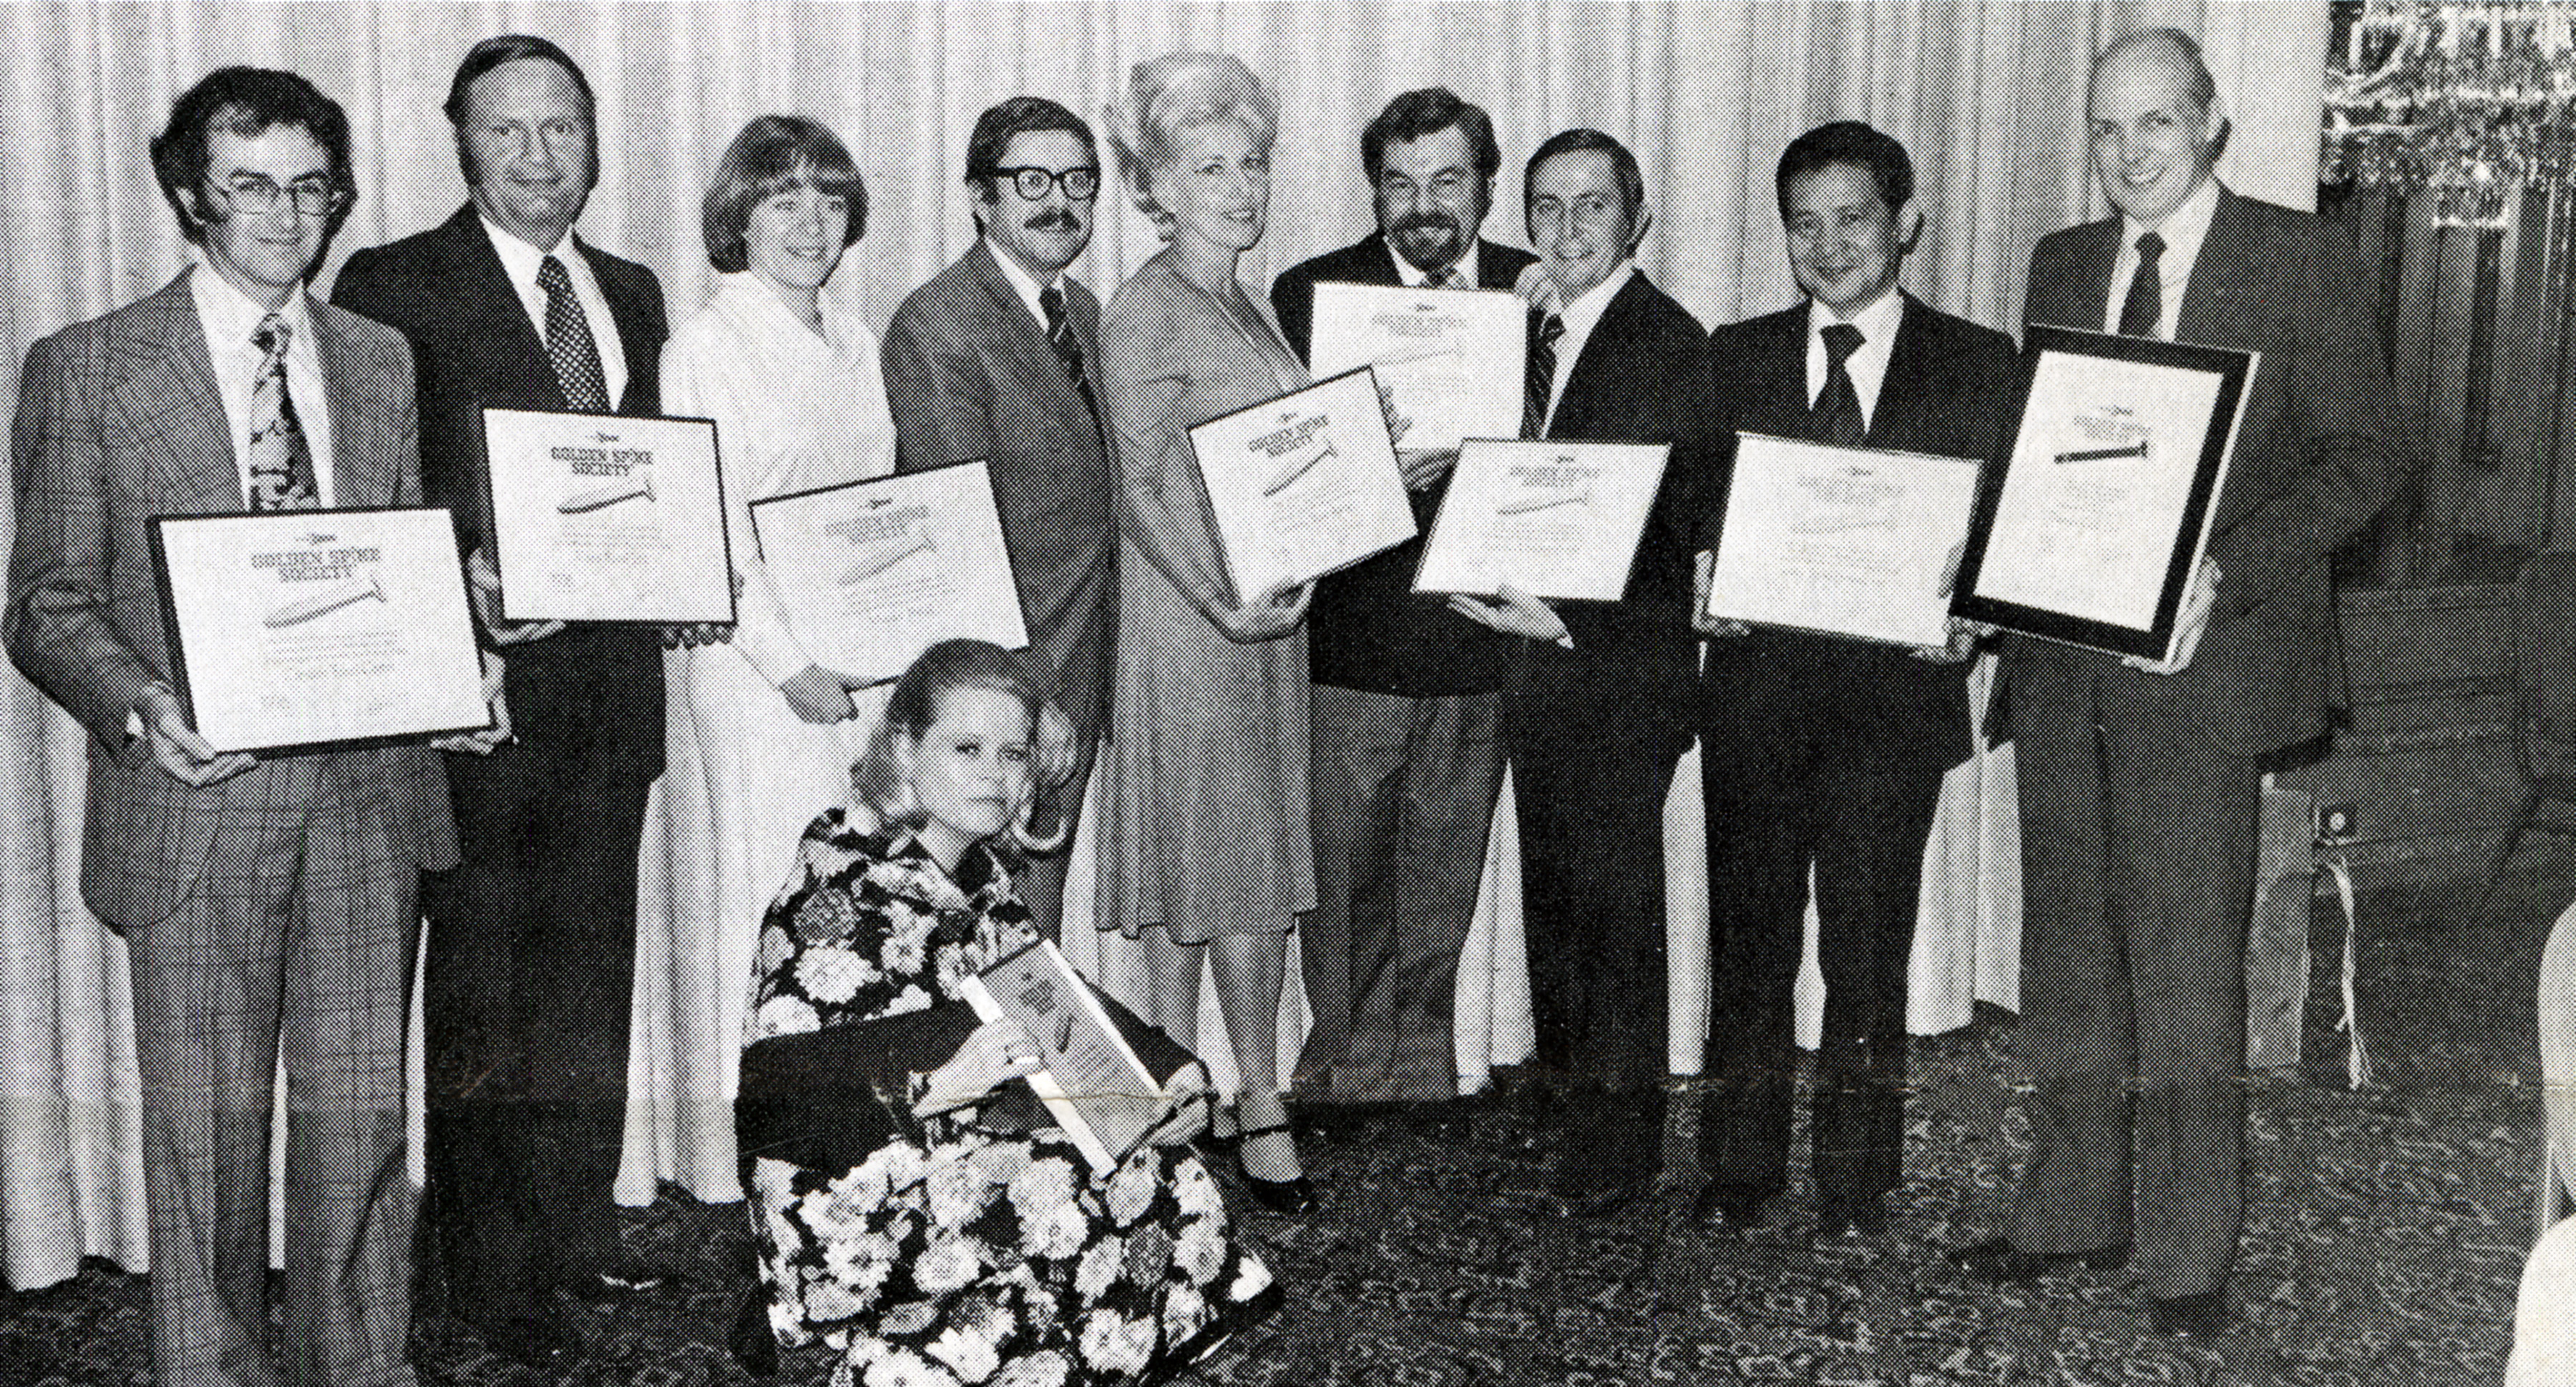 Foreign travel agents are inducted into the Golden Spike Society, 1977